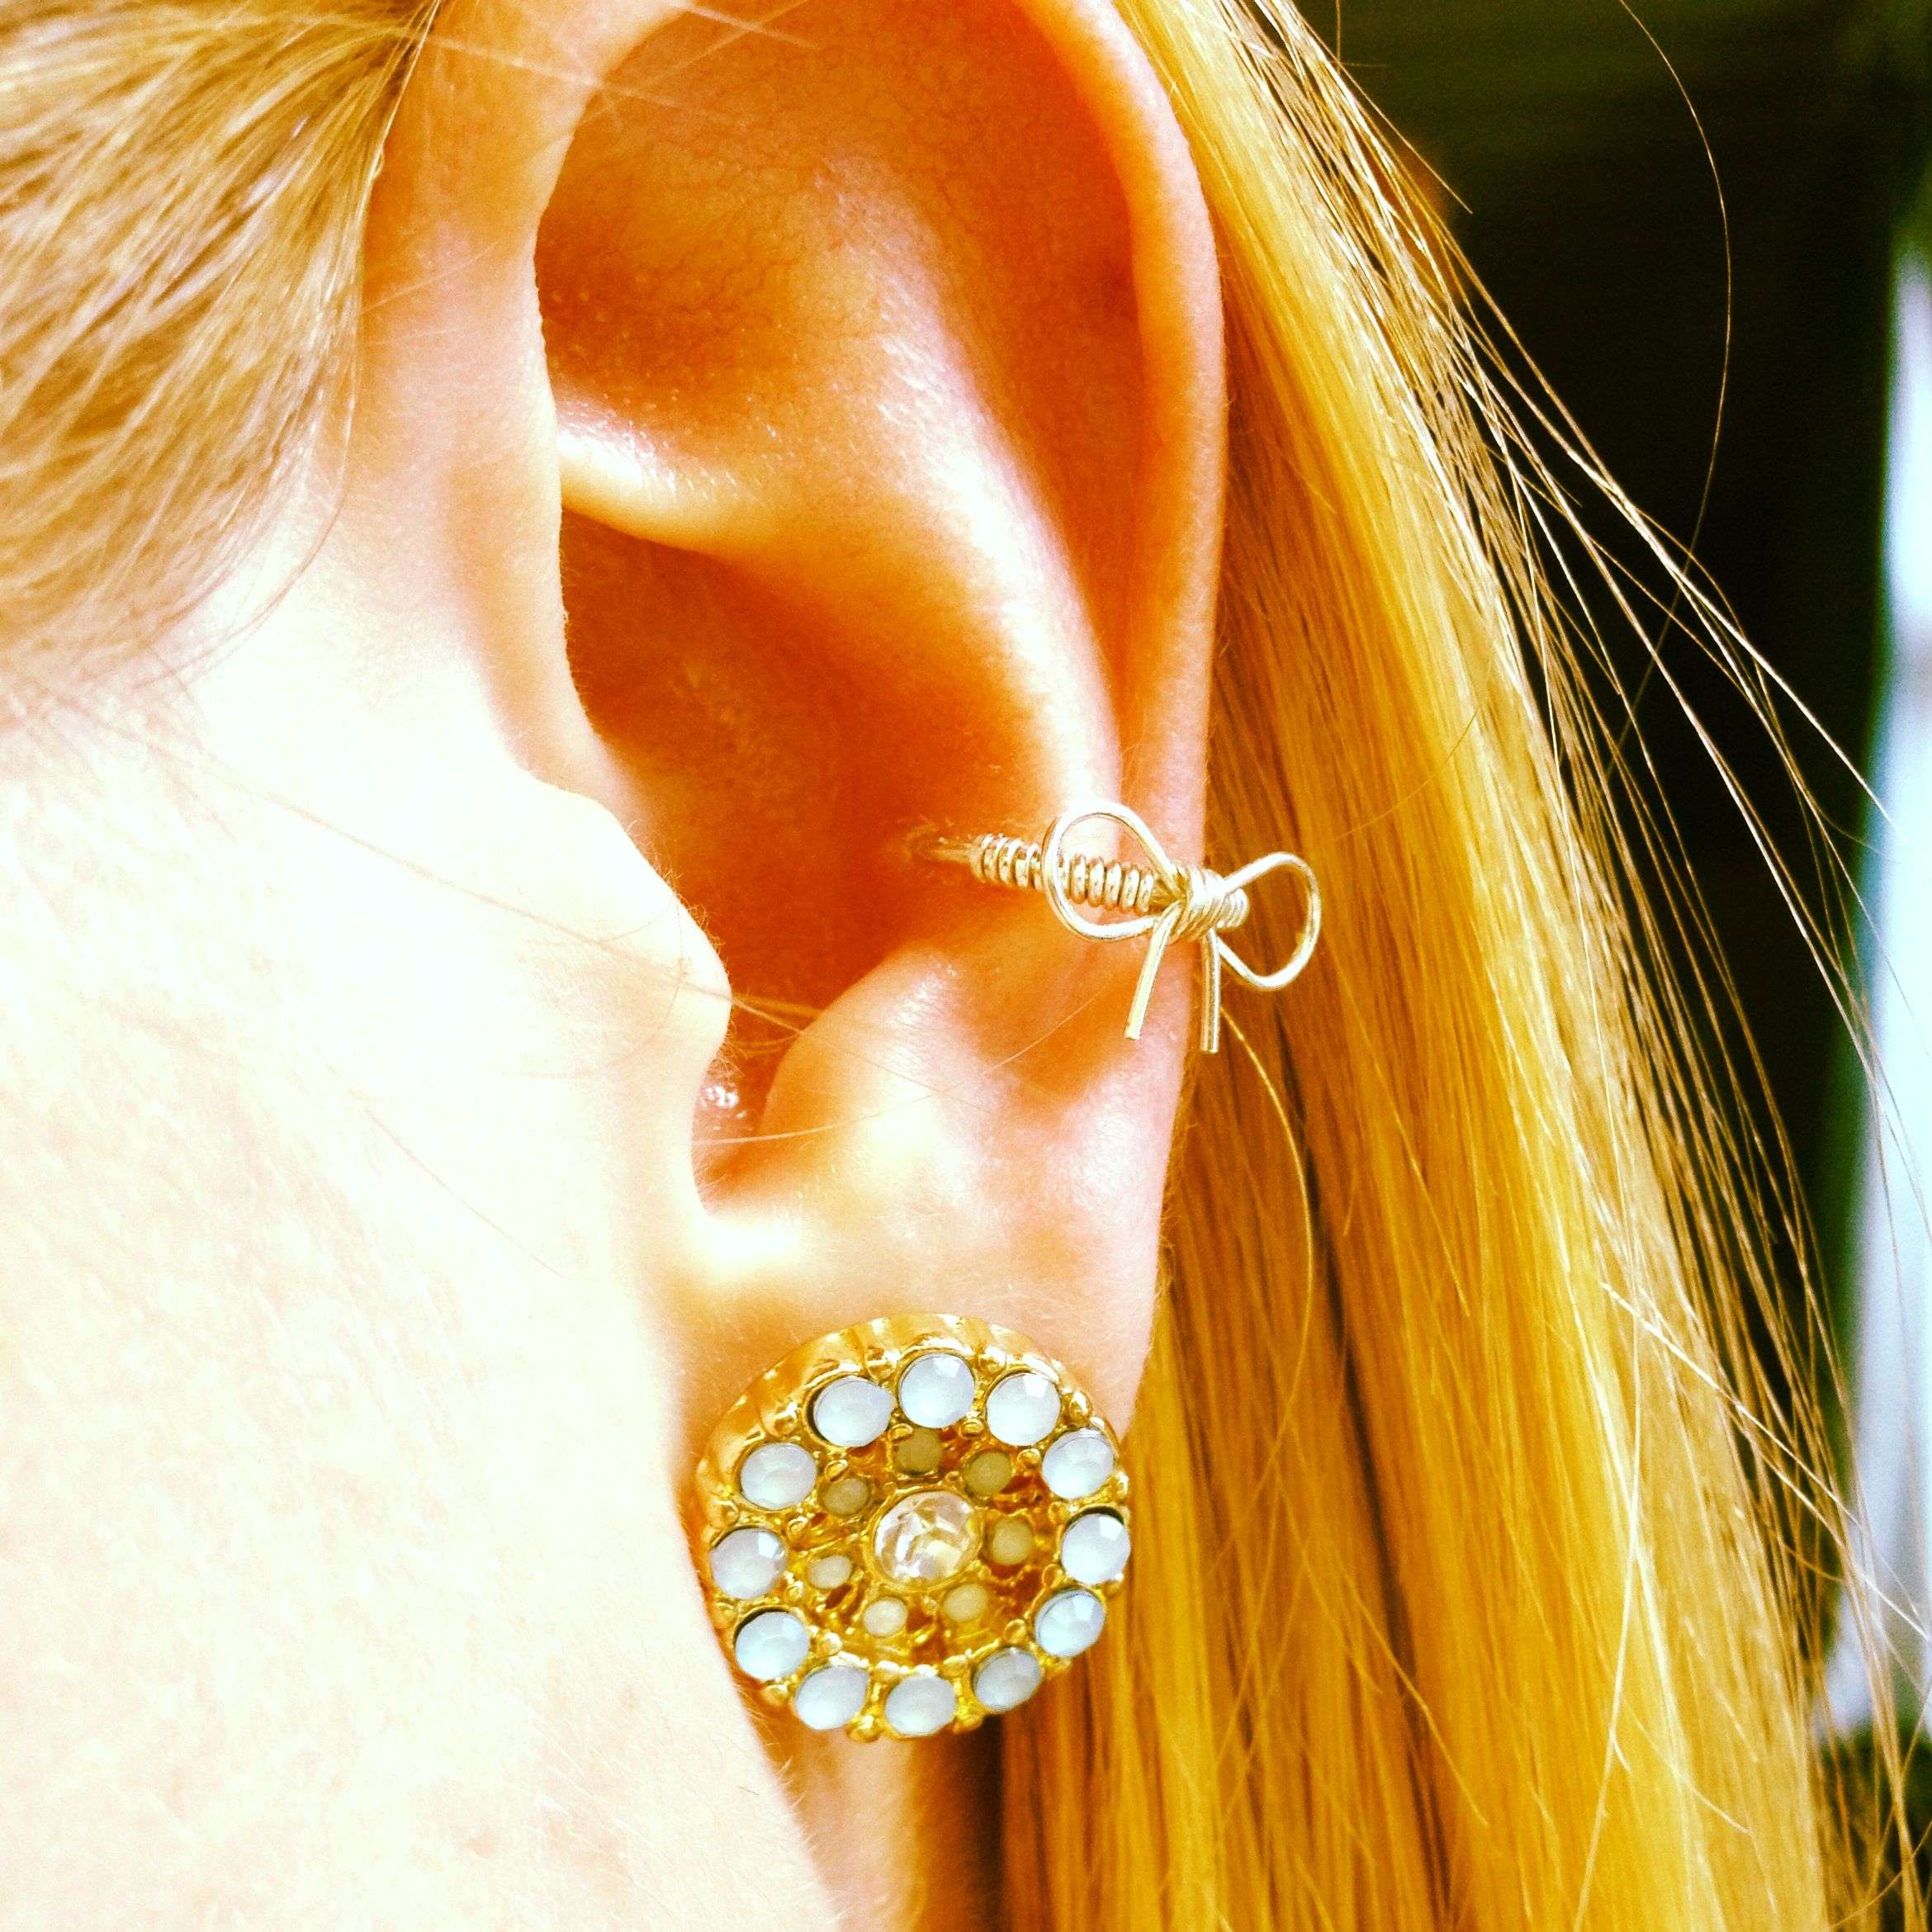 Conch piercing with bow cuff earring! I NEED this earring!